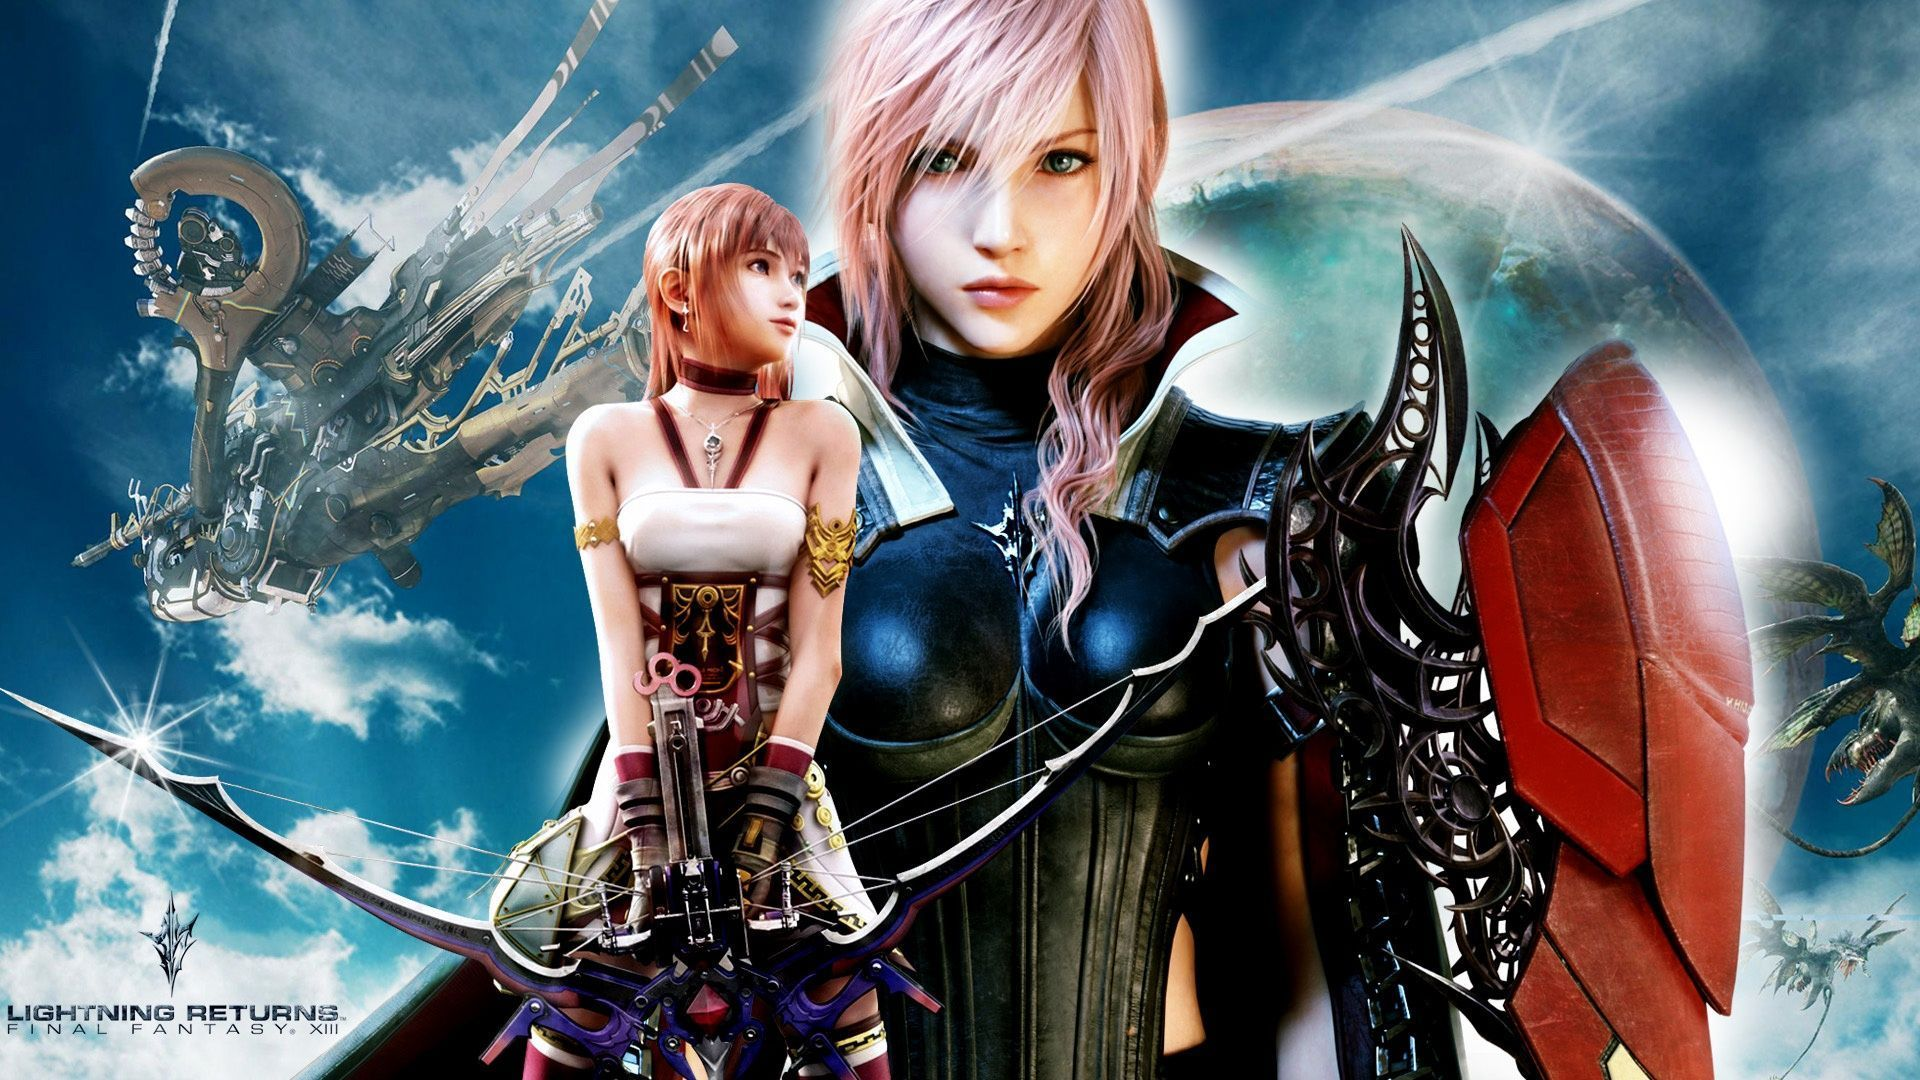 Final Fantasy 13 Wallpapers Hd Wallpaper Cave Lightning Final Fantasy Final Fantasy Girls Final Fantasy Wallpaper Hd